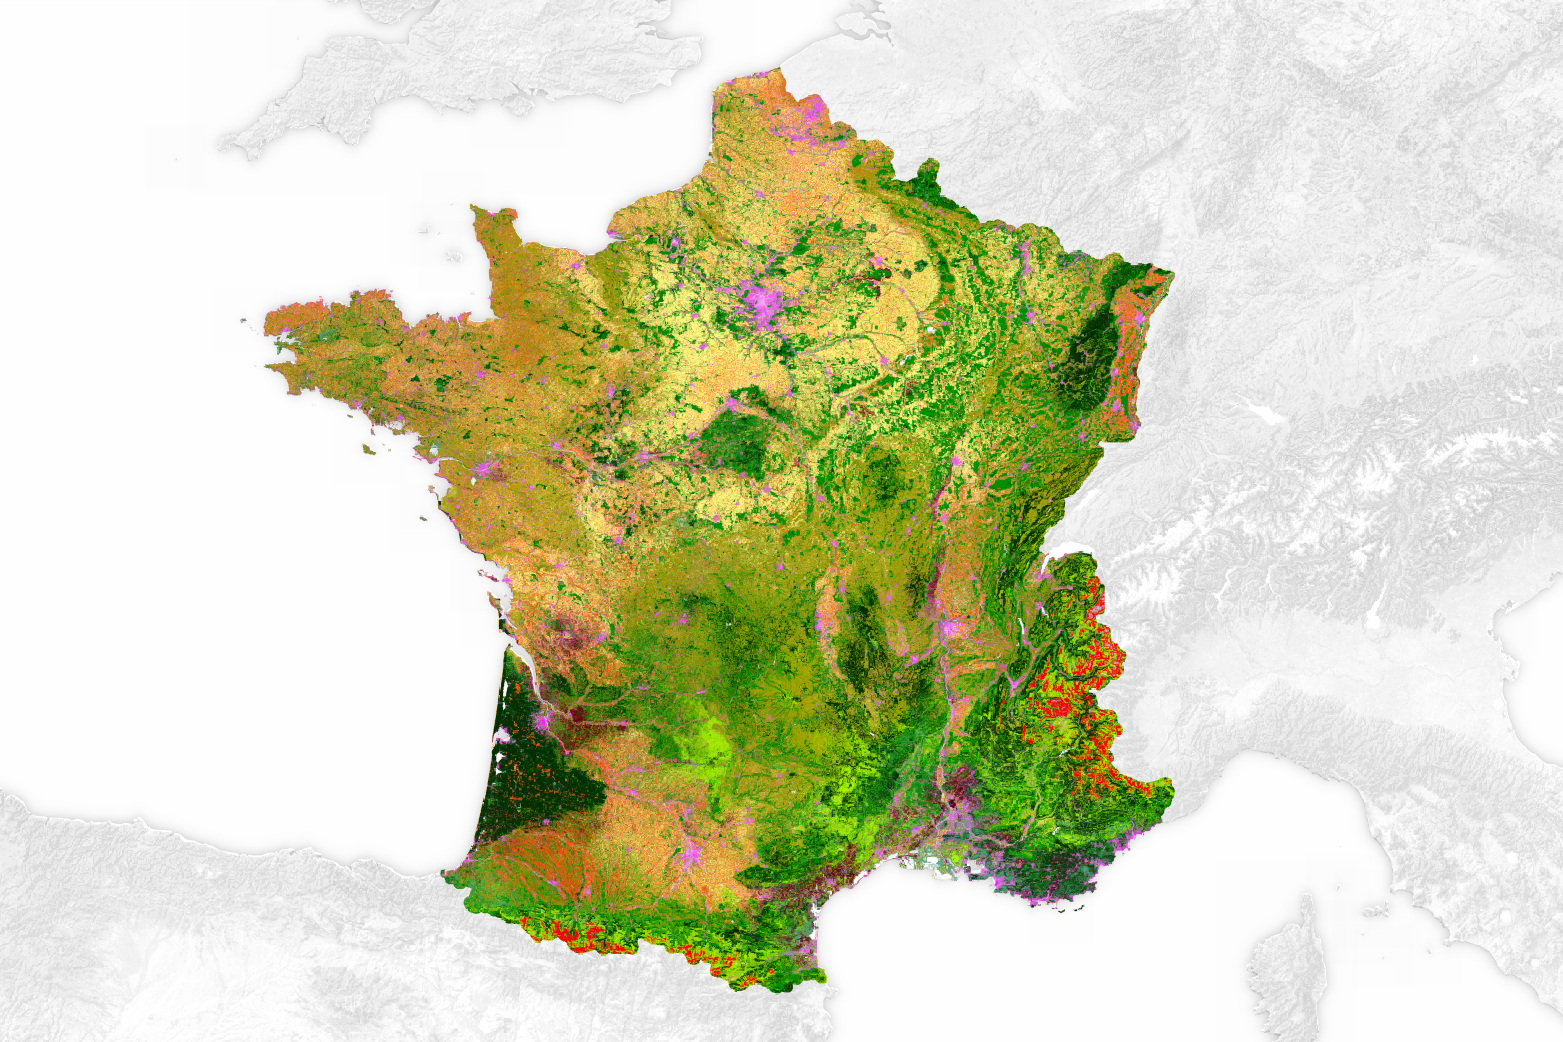 Land cover map of france image of the day land cover map of france gumiabroncs Choice Image